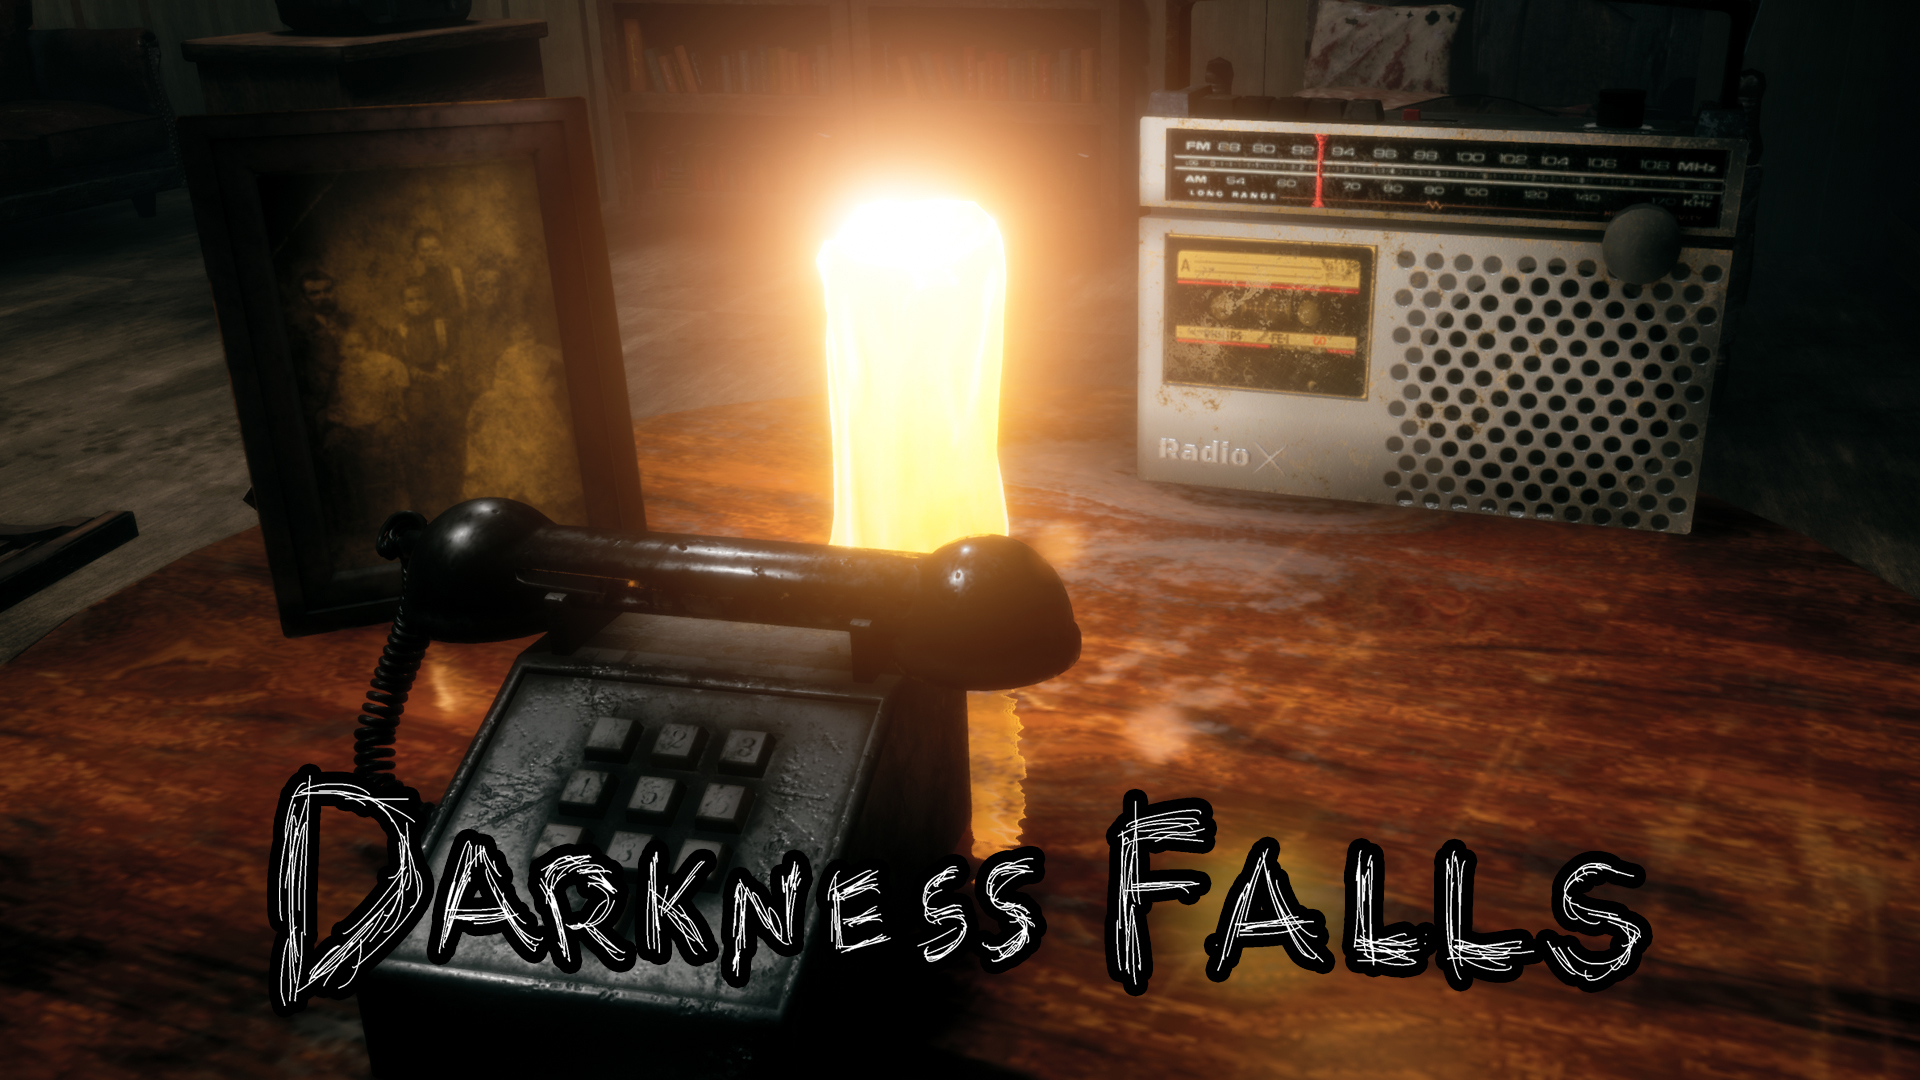 Darkness Falls - The Game